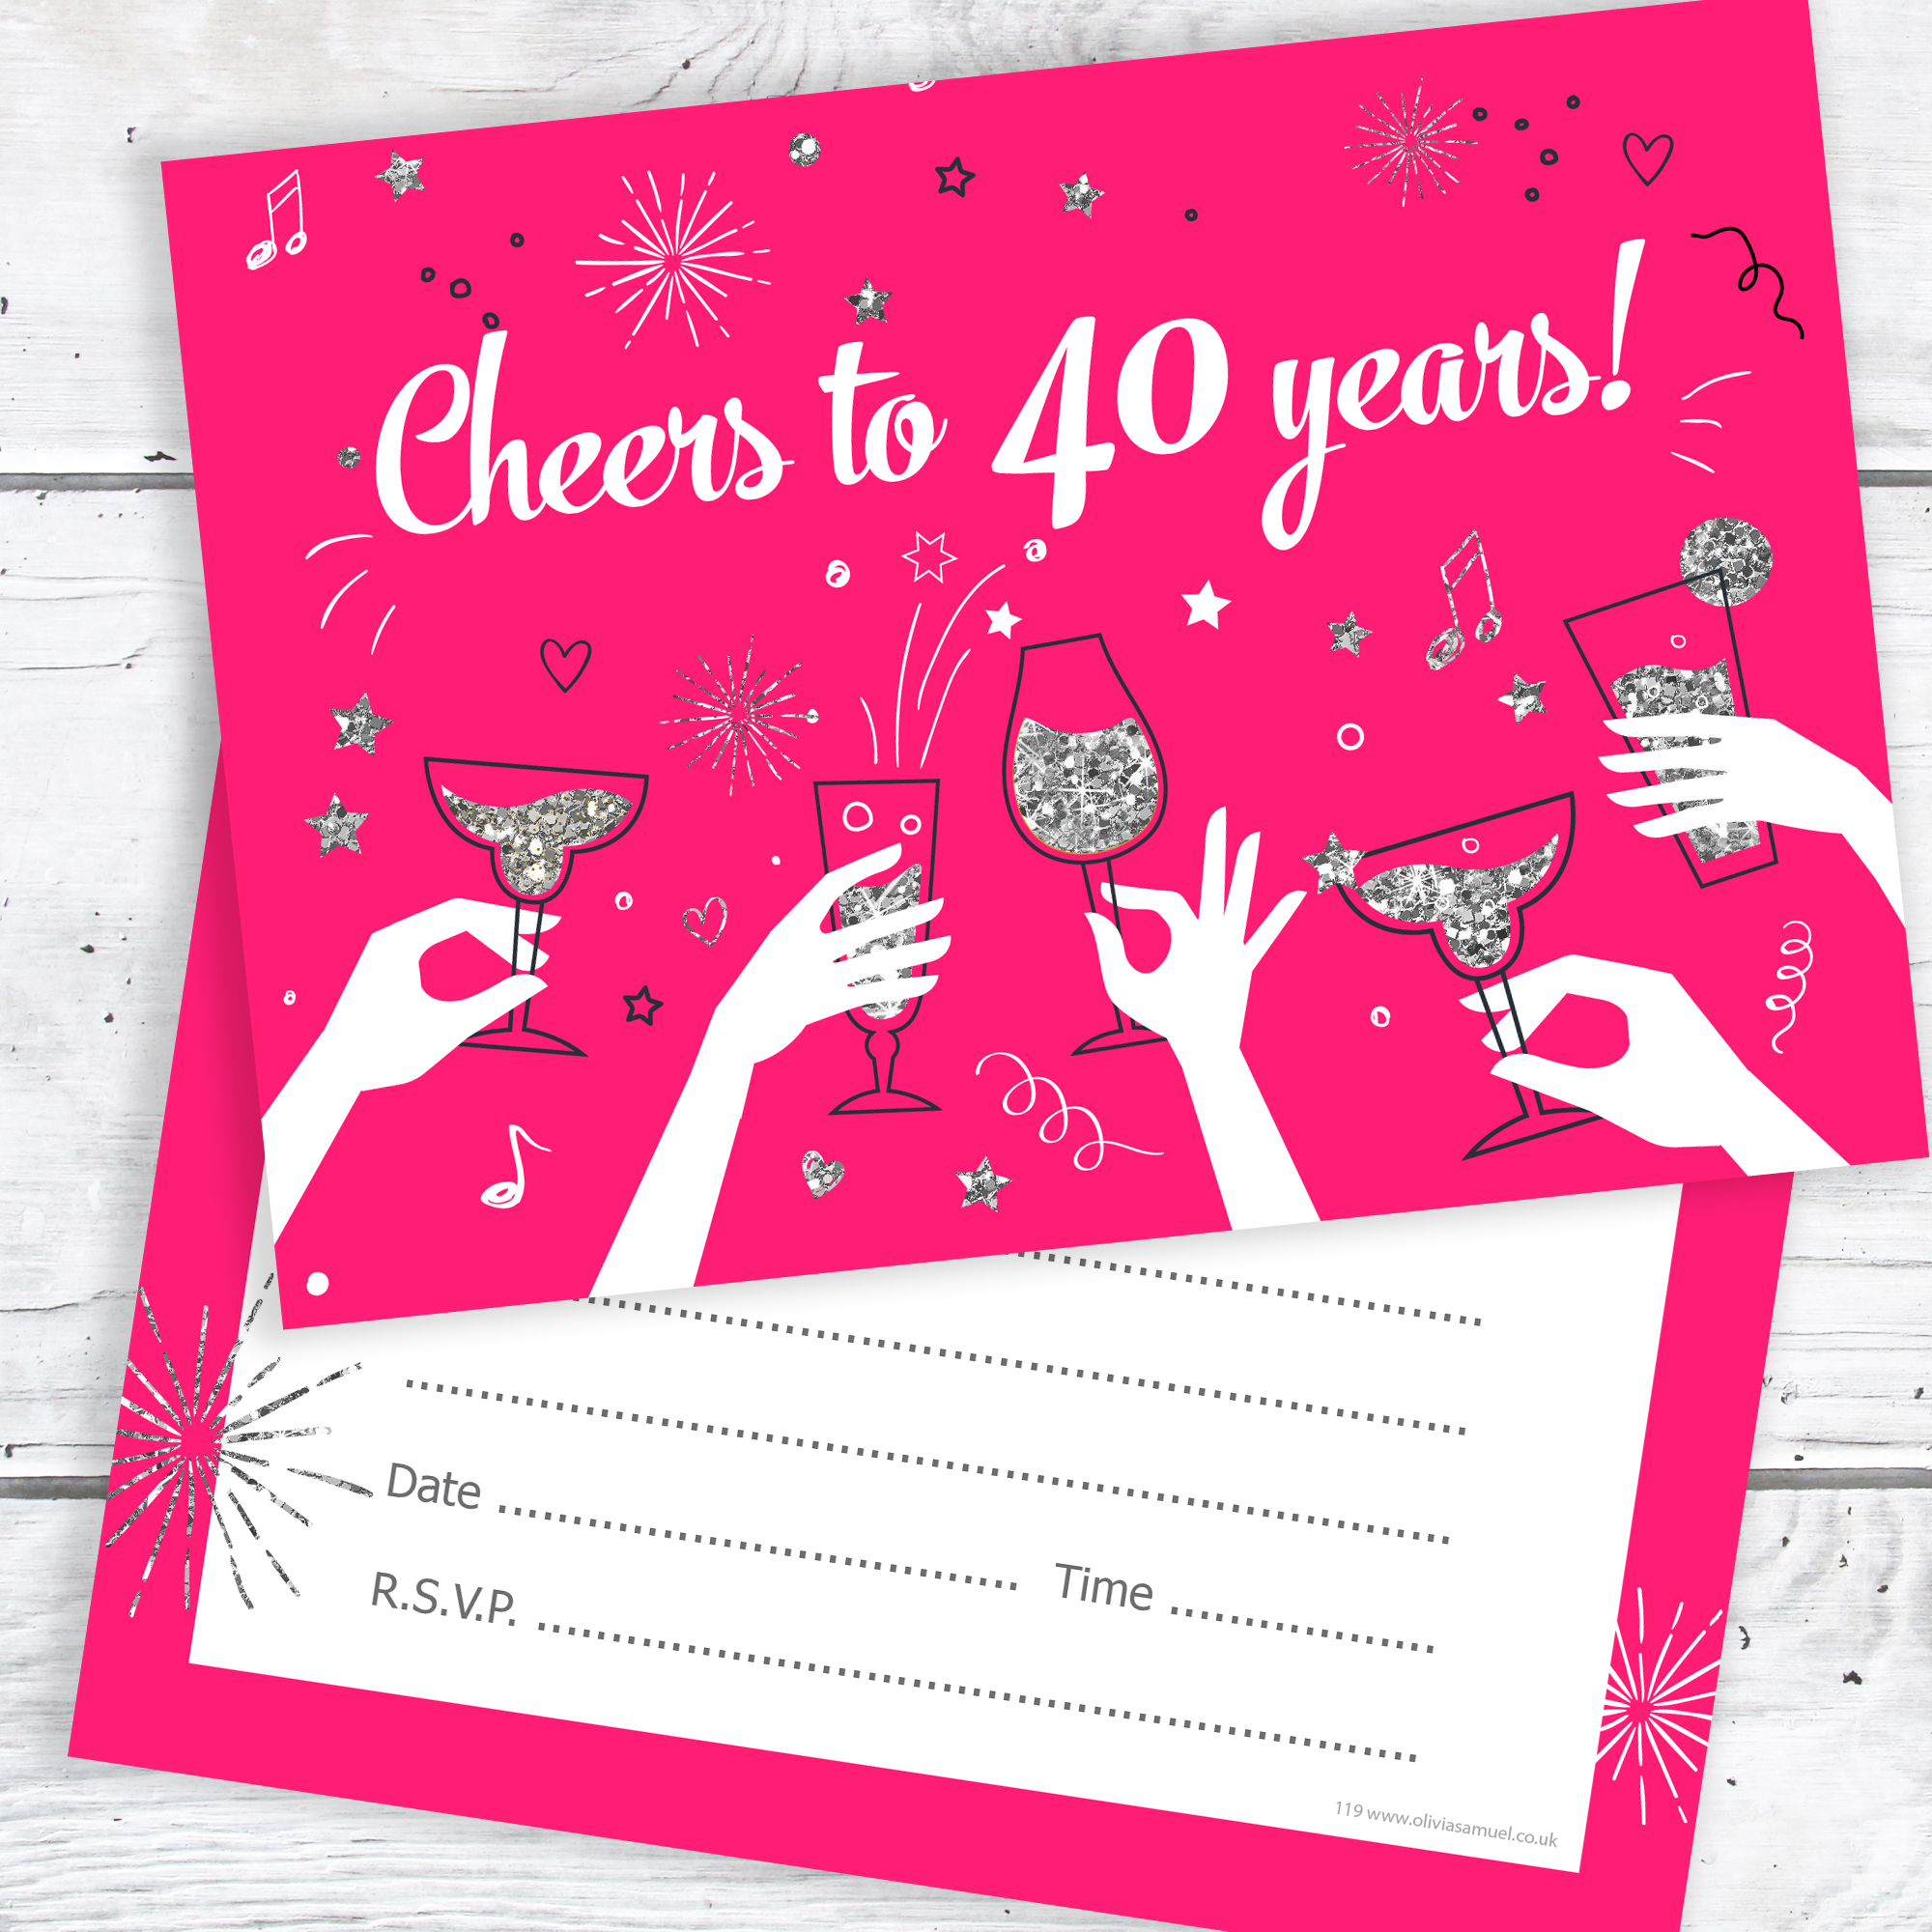 40th Birthday Party Invitations Cheers To 40 Years Ladies Pack